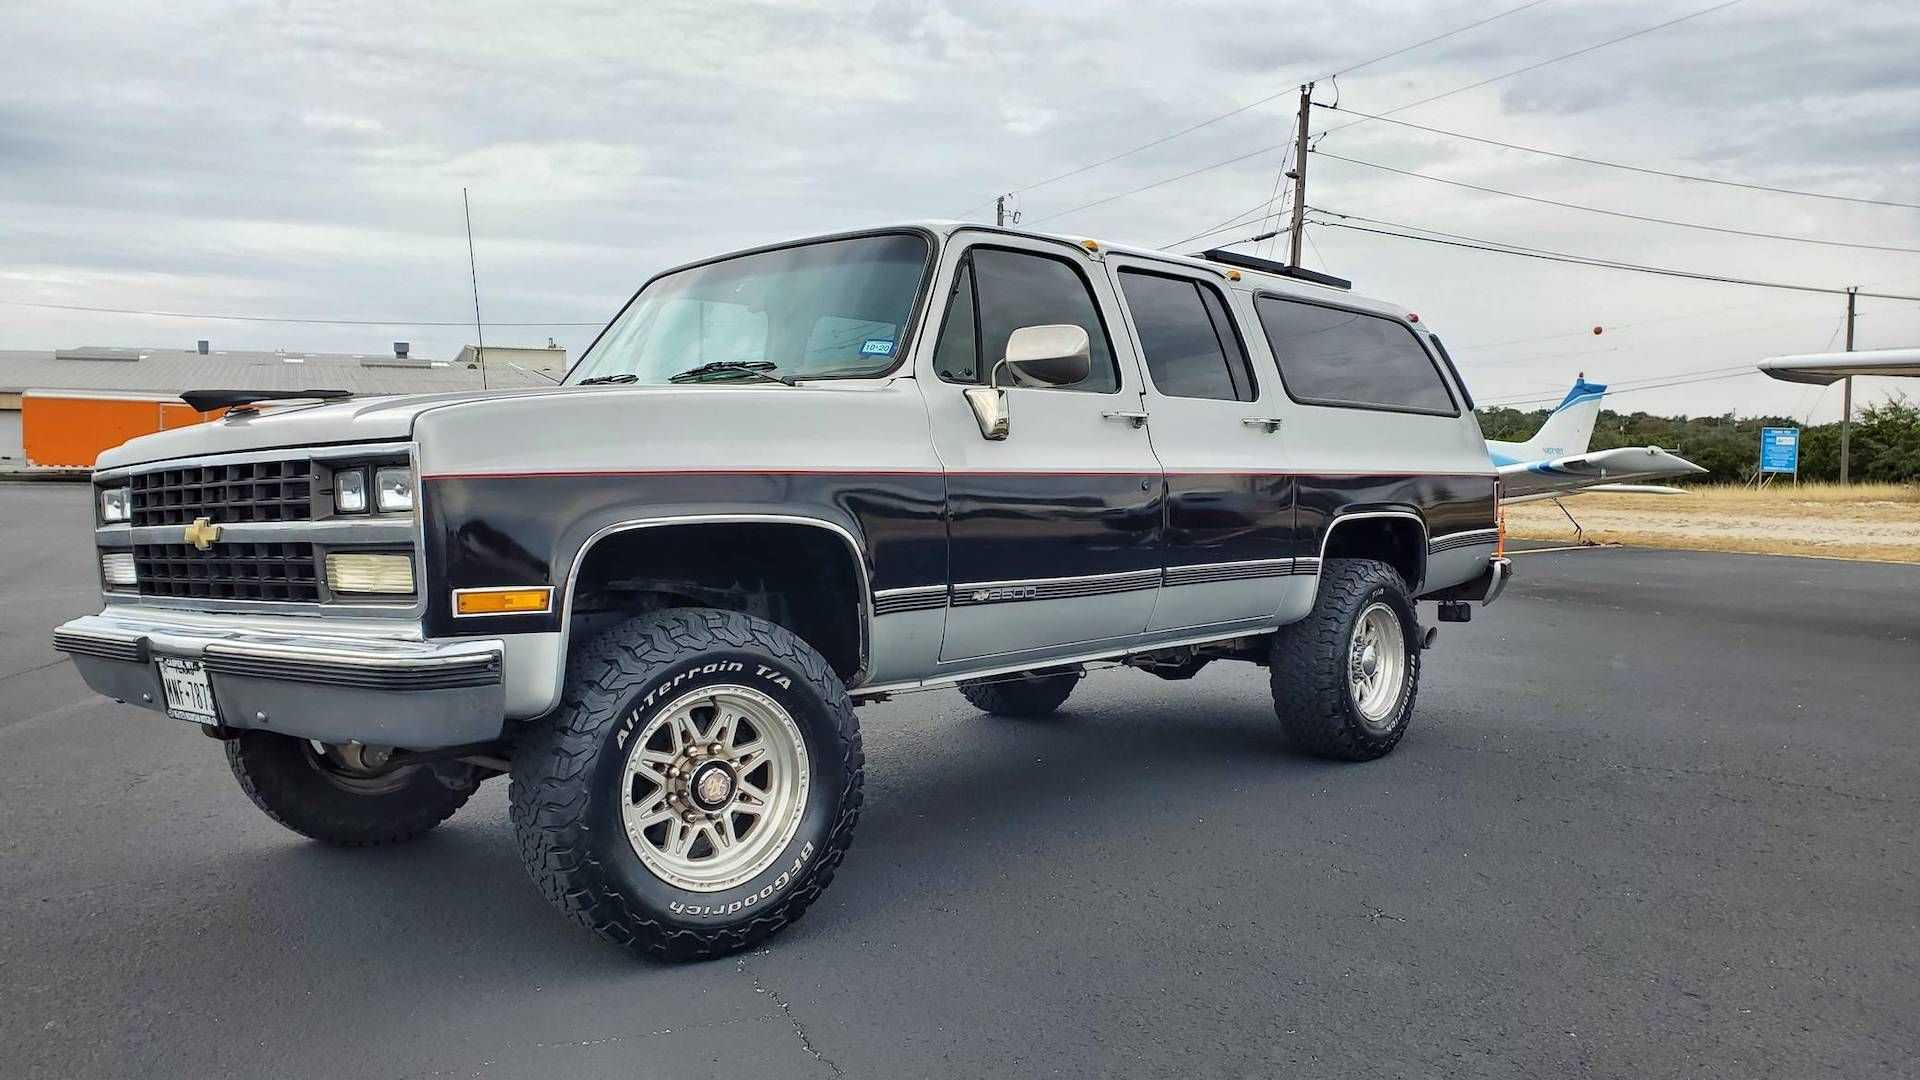 This Good Looking 1989 Chevy Suburban Camper Could Be Yours